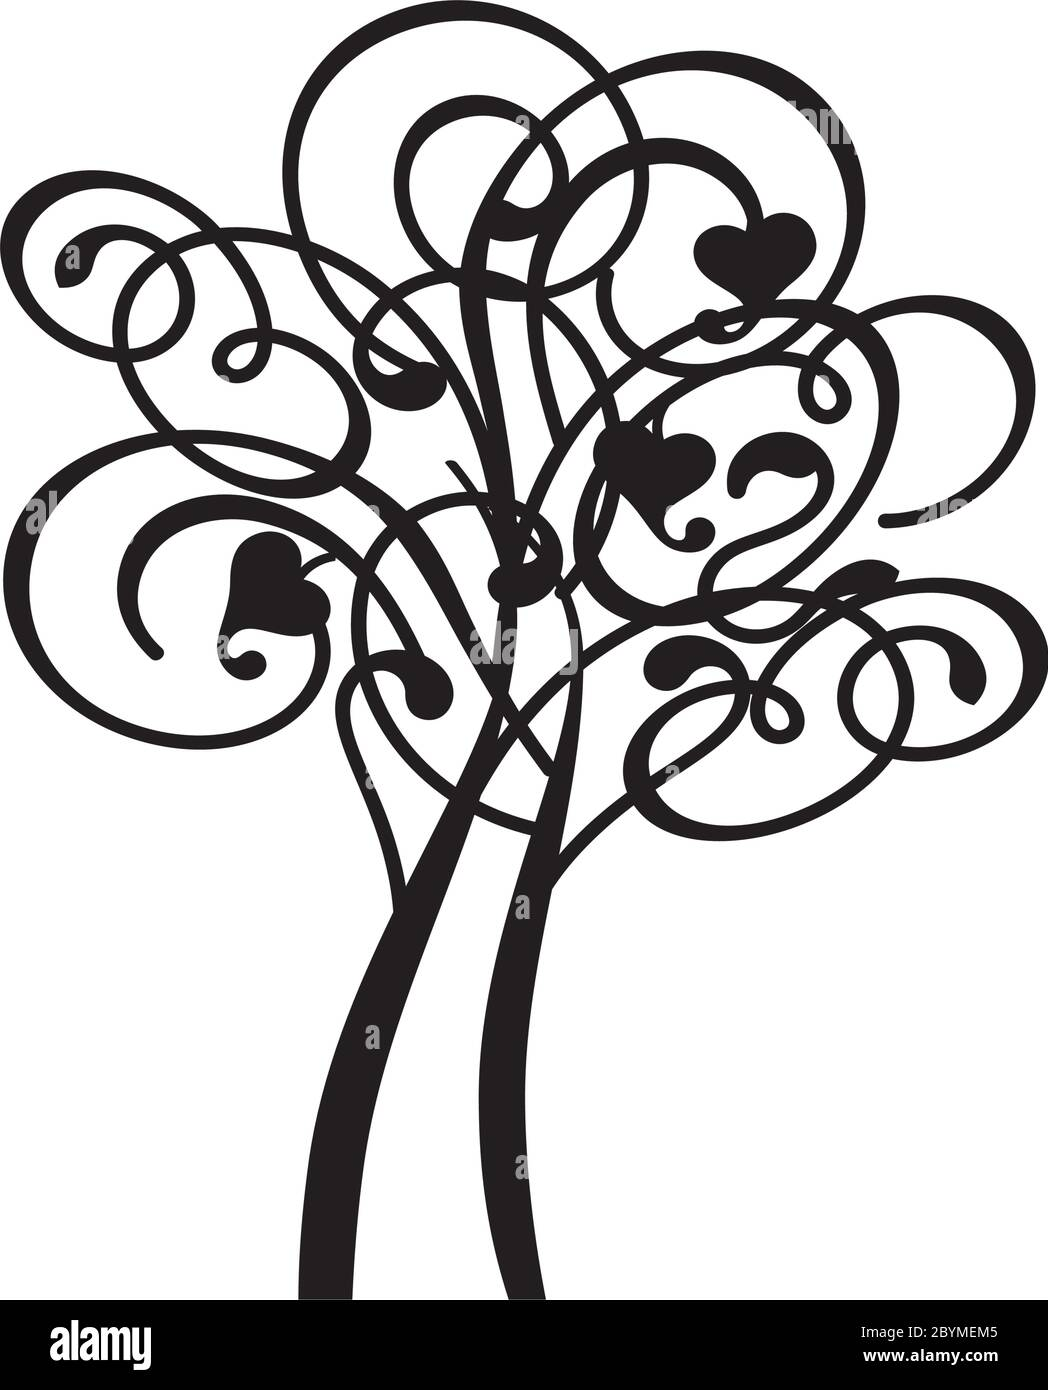 Tree Of Life Illustration High Resolution Stock Photography And Images Alamy It premiered on october 6 , 2019 , and is the eleventh episode in the third season. https www alamy com spring decorative tree of life silhouette shape with leaves vector outline illustration plant in garden royalty free vector object image361253653 html